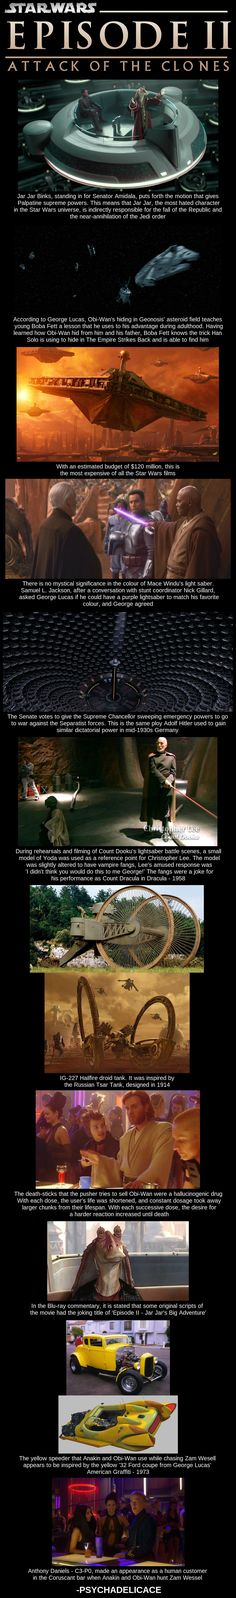 Star Wars Facts about movies and filmings